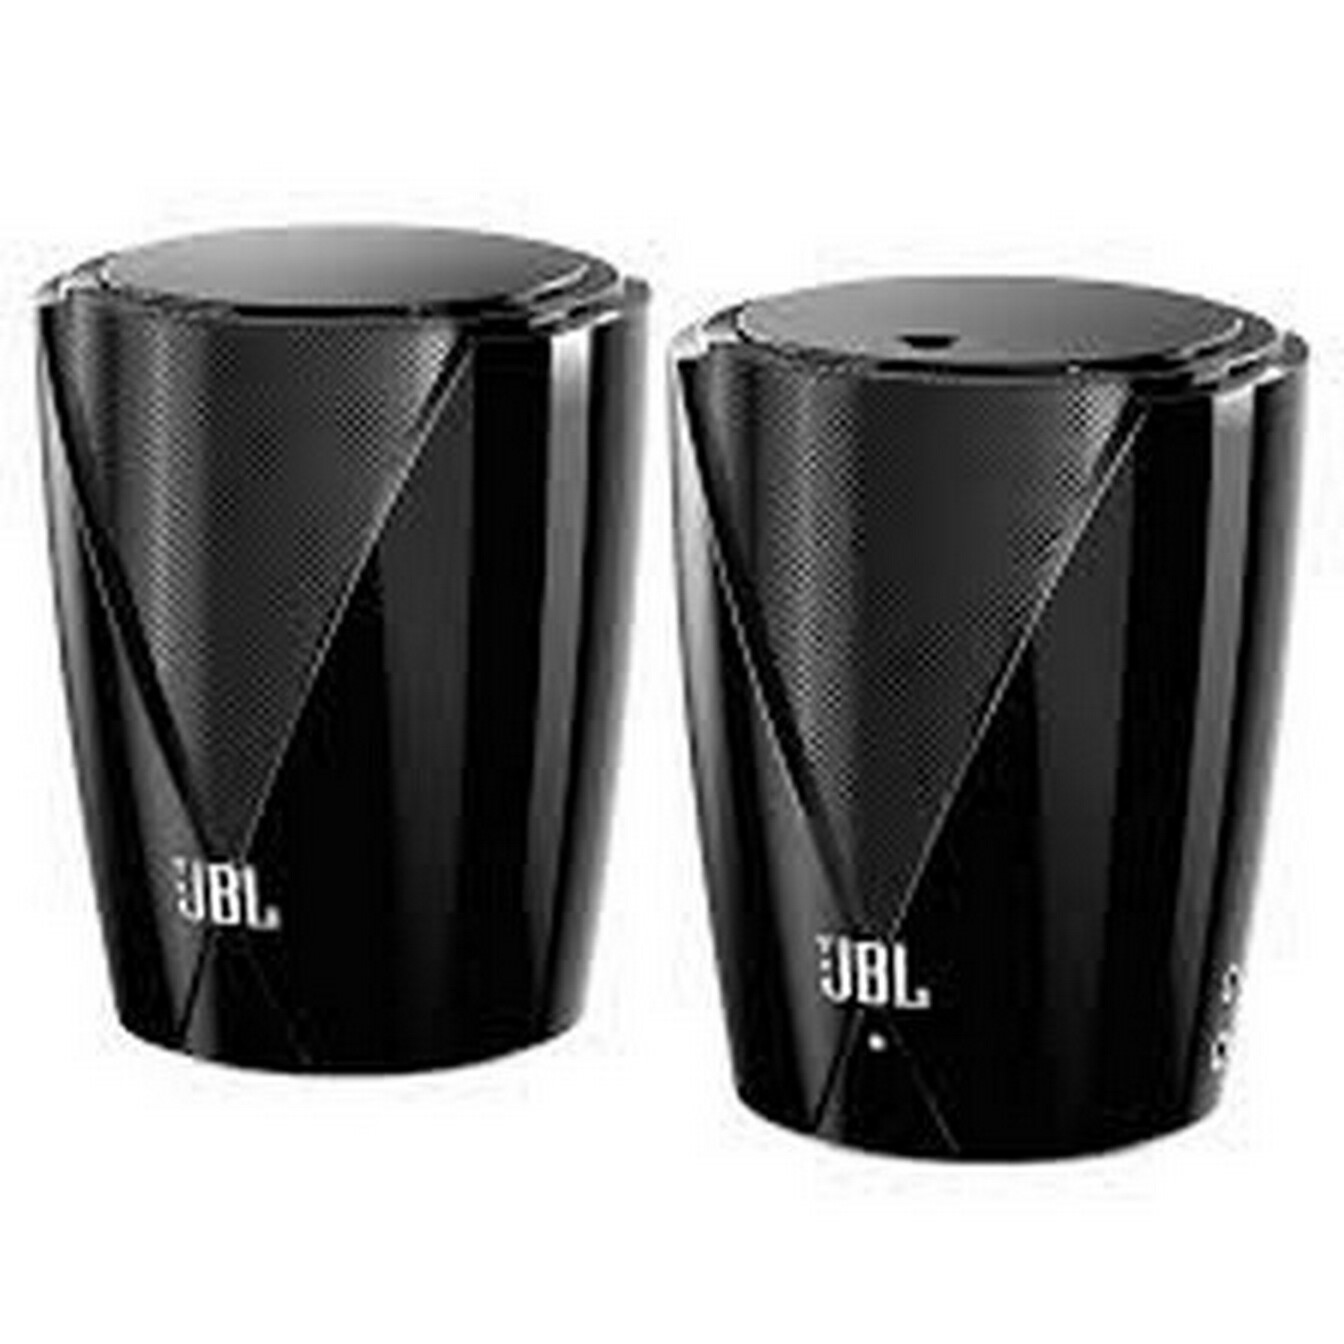 JBL JEMBE 2.0 CHANNEL HOME AUDIO SYSTEM (BLACK)